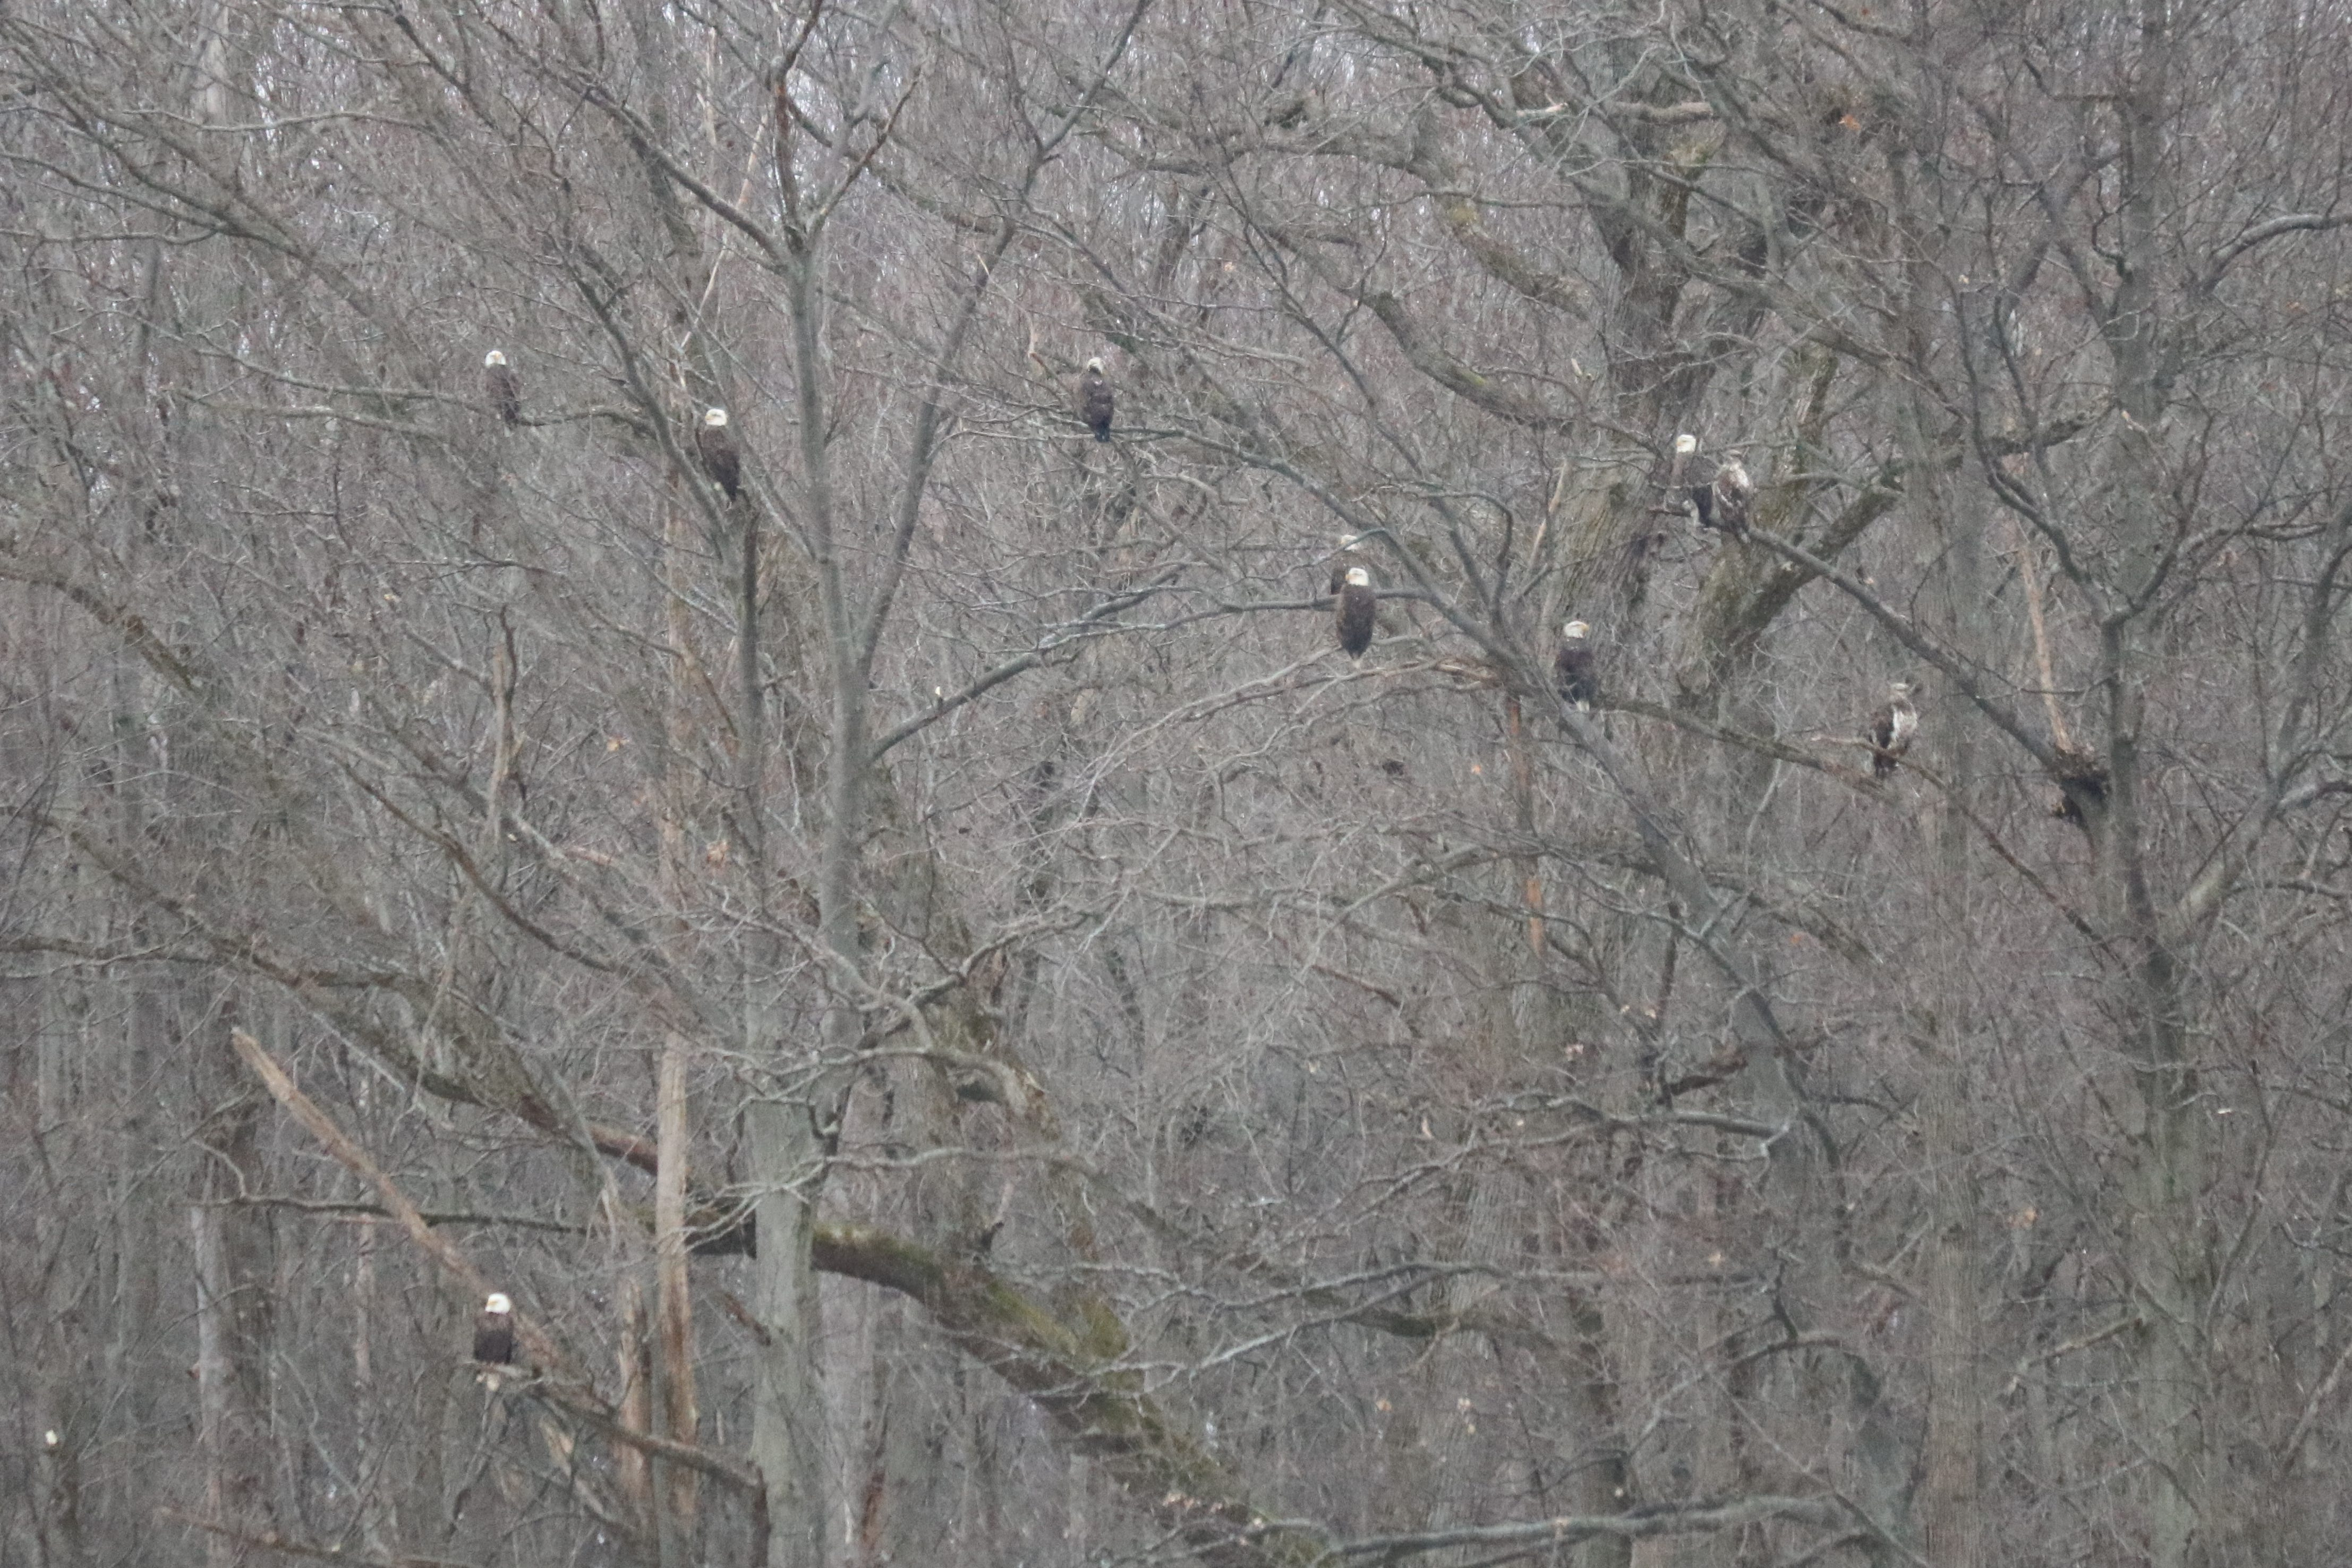 Nearly a dozen bald eagles take a break from the wind on a bitterly cold morning at the Ottawa National Wildlife Refuge.